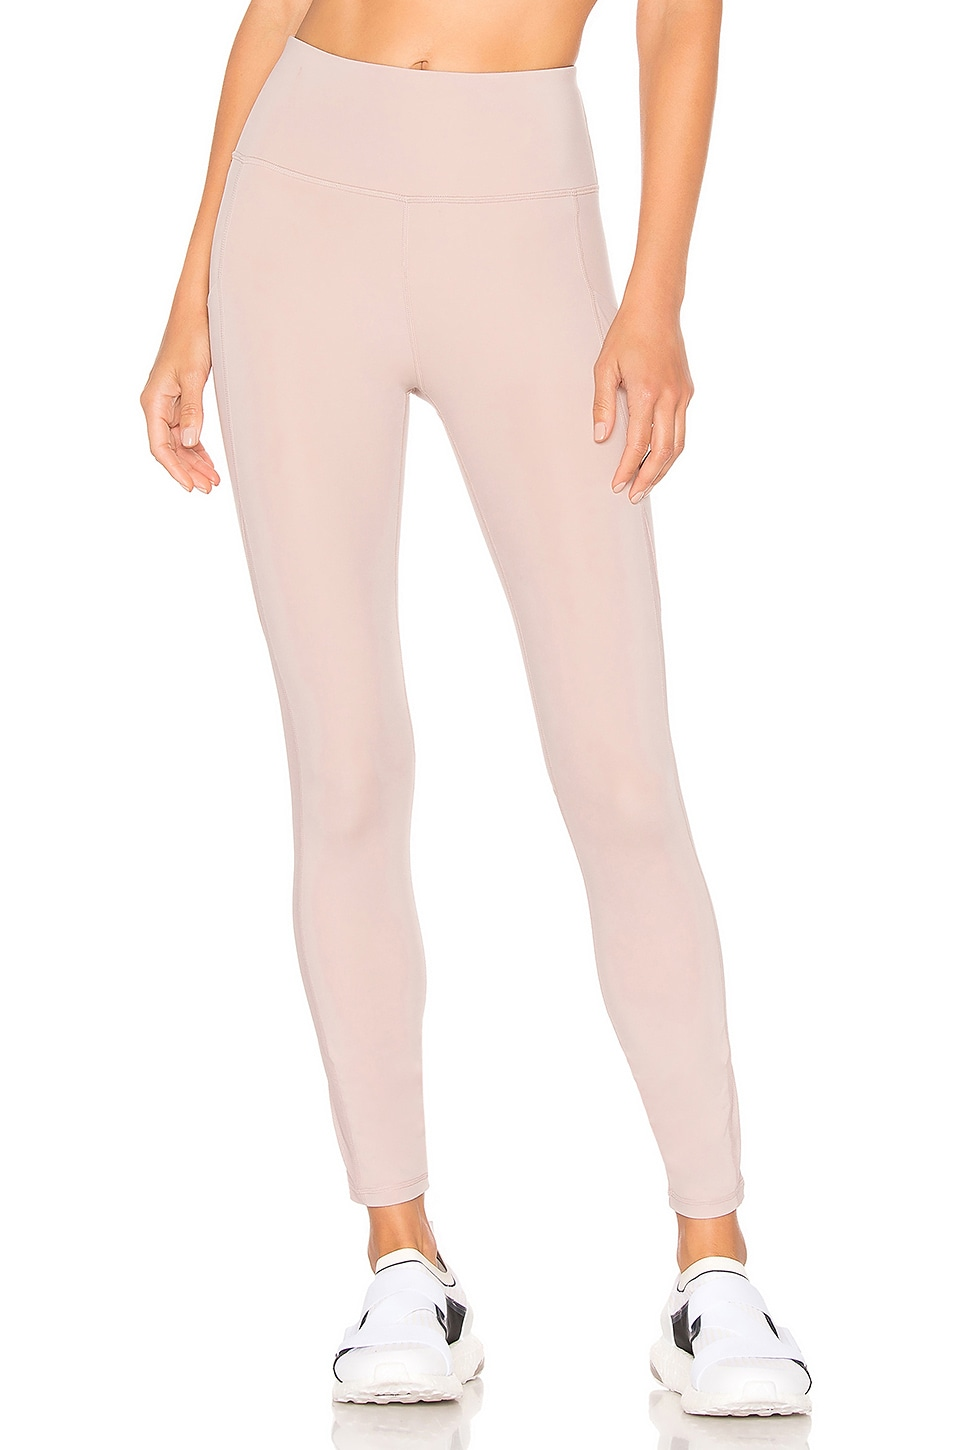 Varley Clyde Legging in Sepia Rose